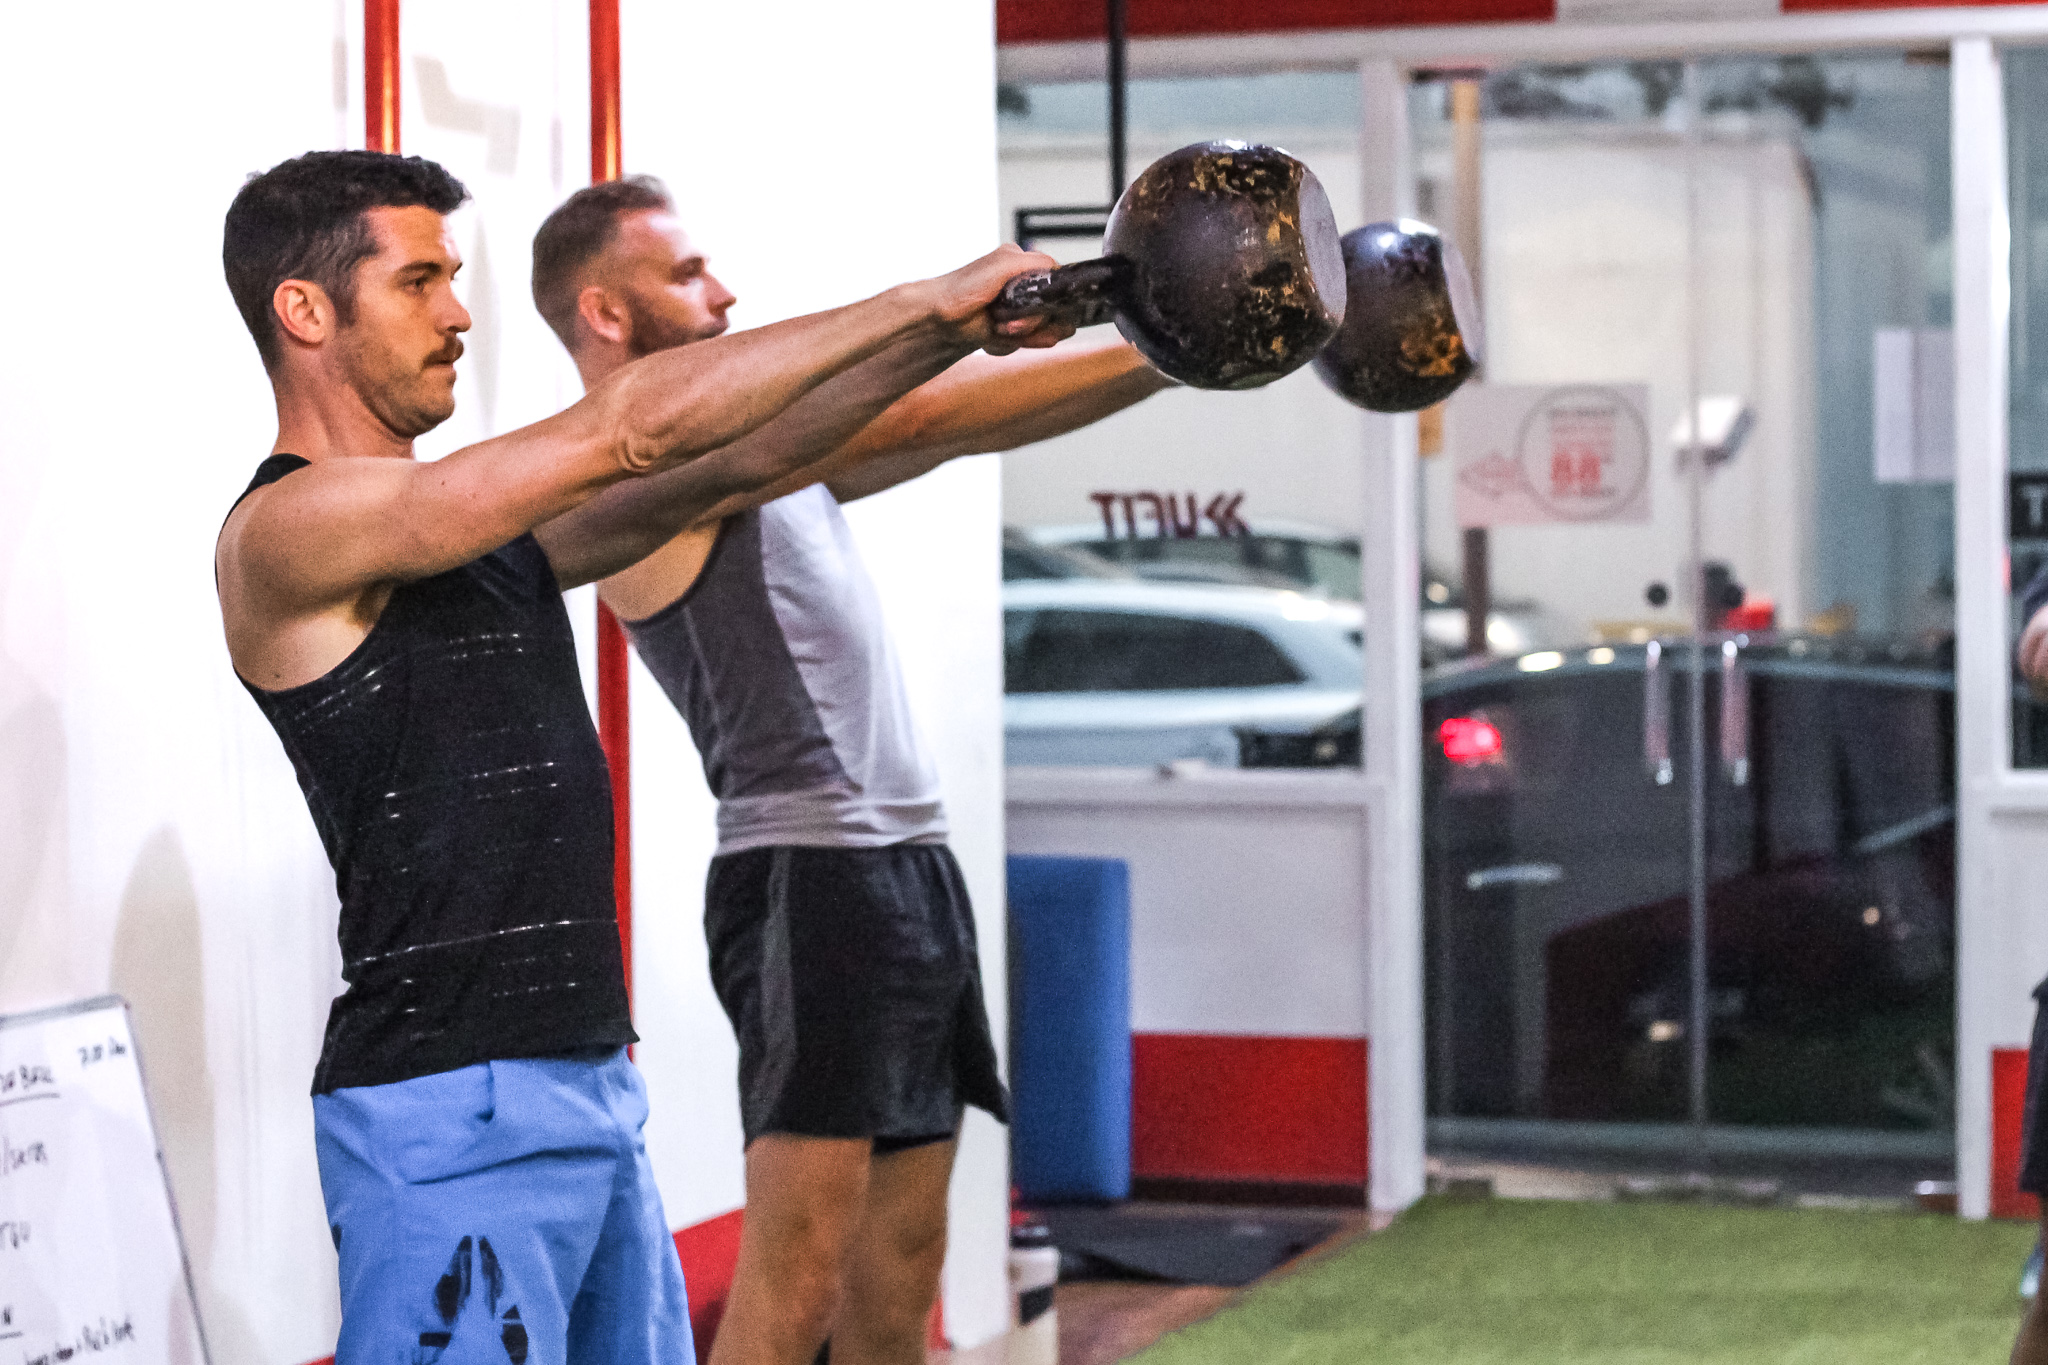 Kettlebell Conditioning   Looking to improve your conditioning, rep stamina, technique, strength, power and explosiveness? Join us for Kettlebell classes at UFIT Amoy Street to take your fitness to the next level!   Read more  →